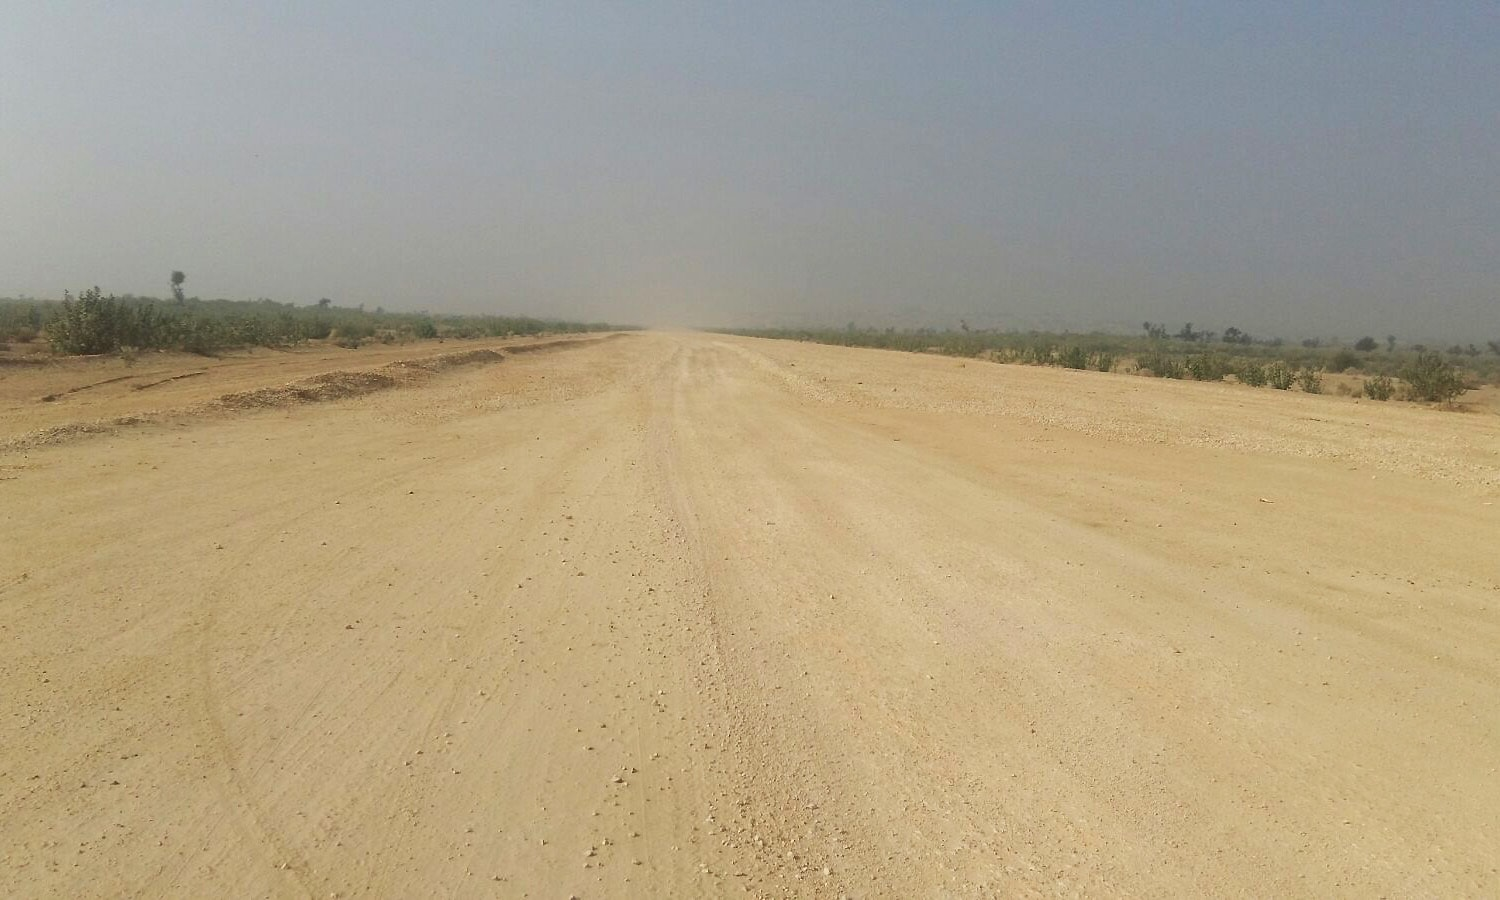 A view of a runway under construction in Thar. — Photo by author